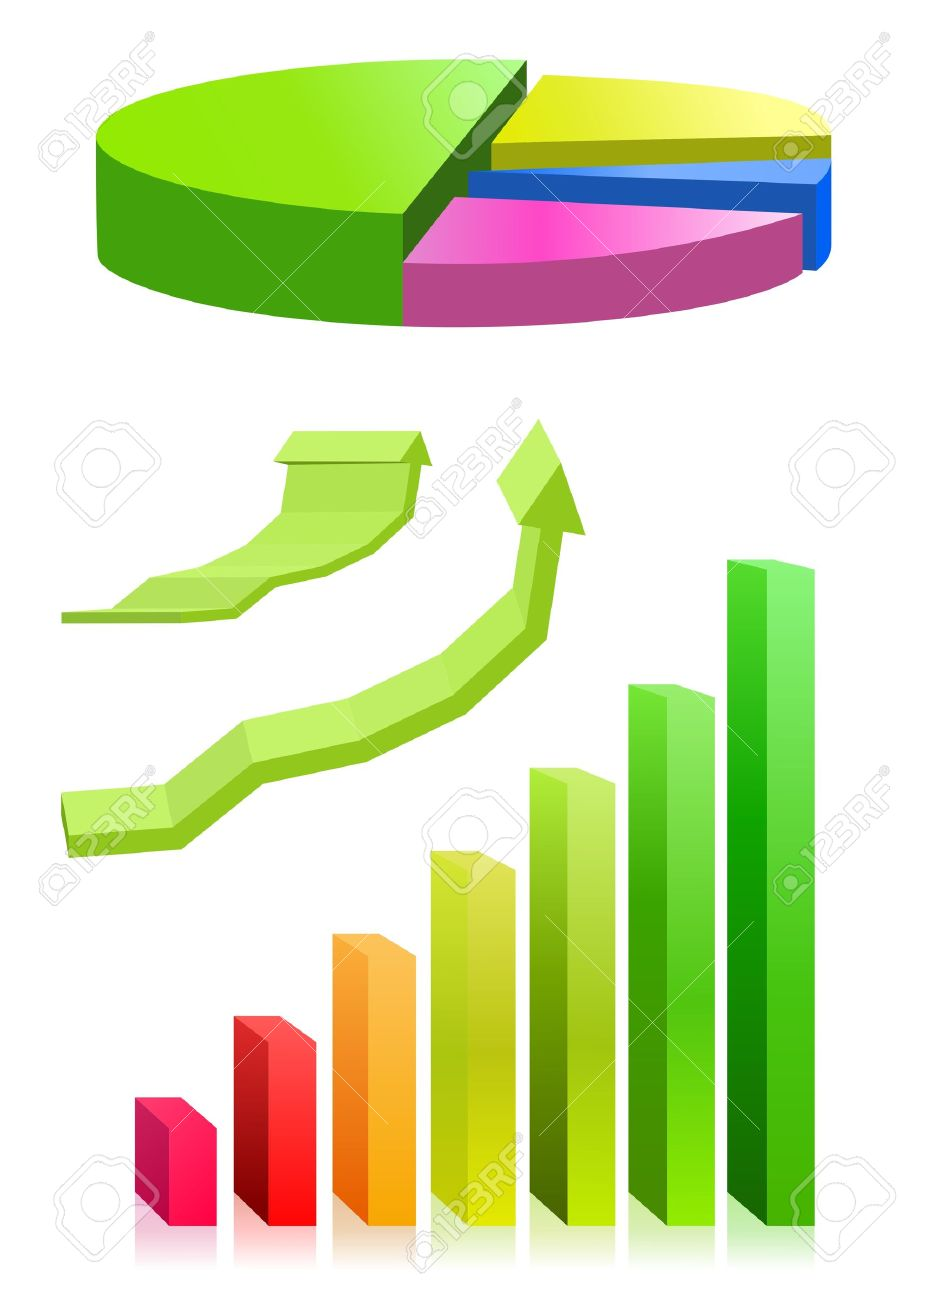 hight resolution of pie chart and bar graph stock vector 11889862